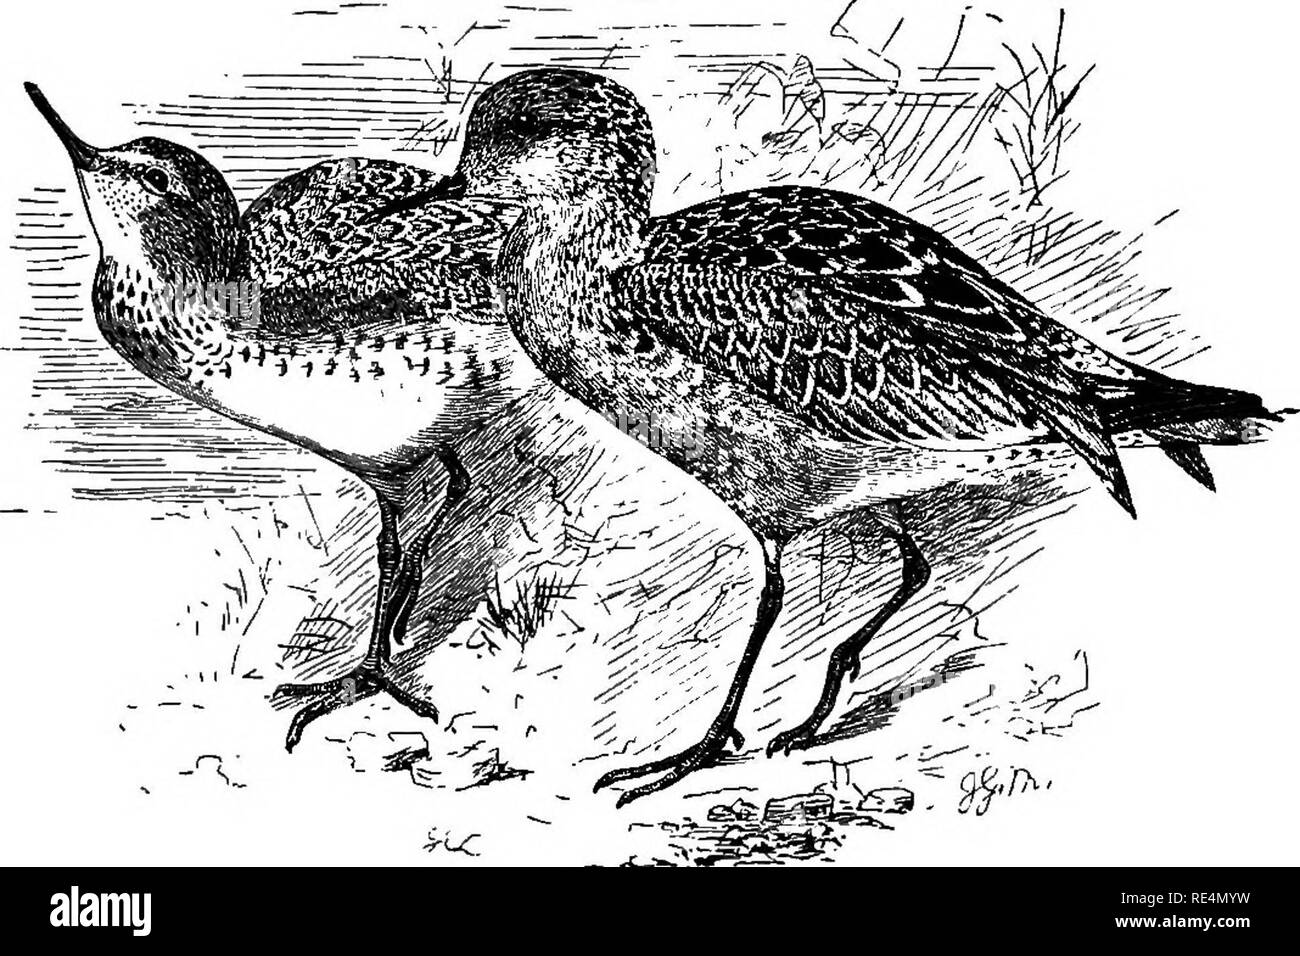 . The geographical distribution of the family Charadriidae, or, The plovers, sandpipers, snipes, and their allies . Shore birds. Geographi- cal distribu- tion. 422 TEIXGA. The breeding-grounds of the Japanese Knot are unknown, but Middendorff observed it during the whole summer on the southern shores of the Sea of Olchotsk, though he obtained no evidence of its nesting there. It has occurred on migration in the valley of the Ussuri, on the coasts of Japan and China, and on most of the islands of the Malay Archipelago. It winters on the coasts of Australia, has occurred on the Andaman Islands,  - Stock Image